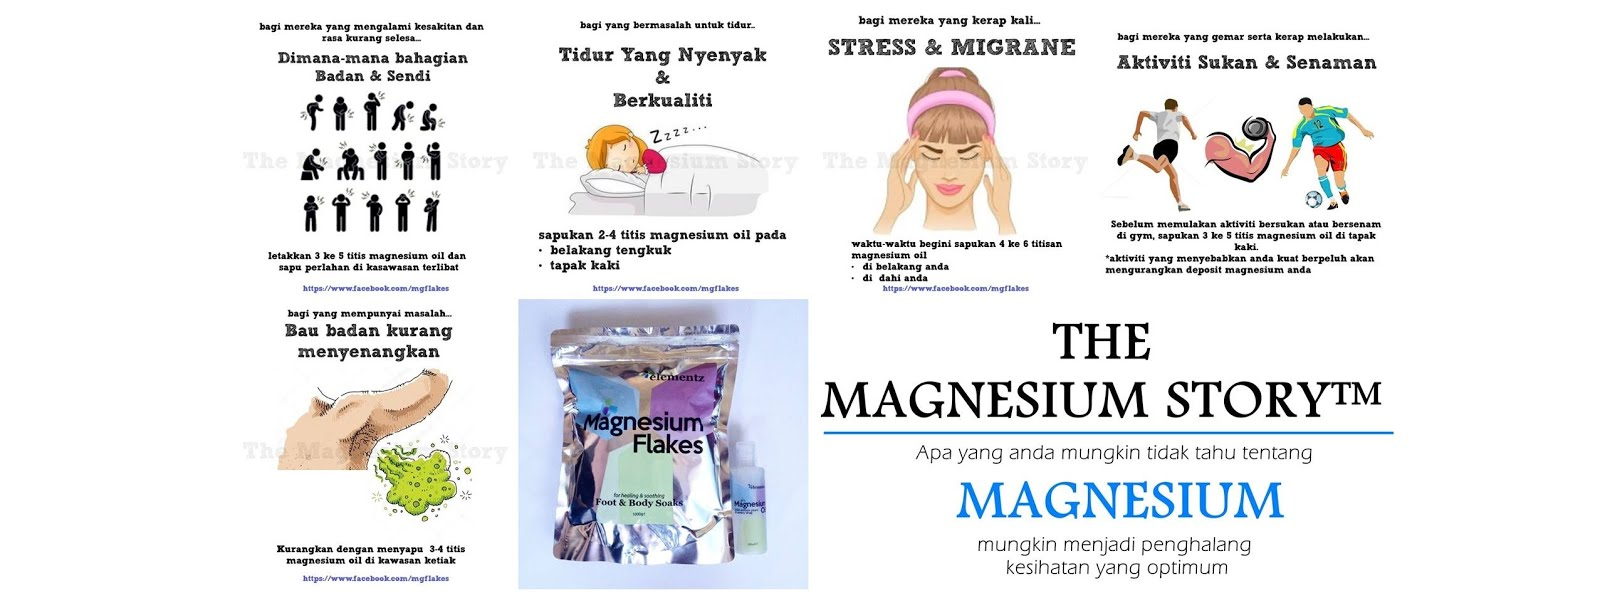 The Magnesium Story